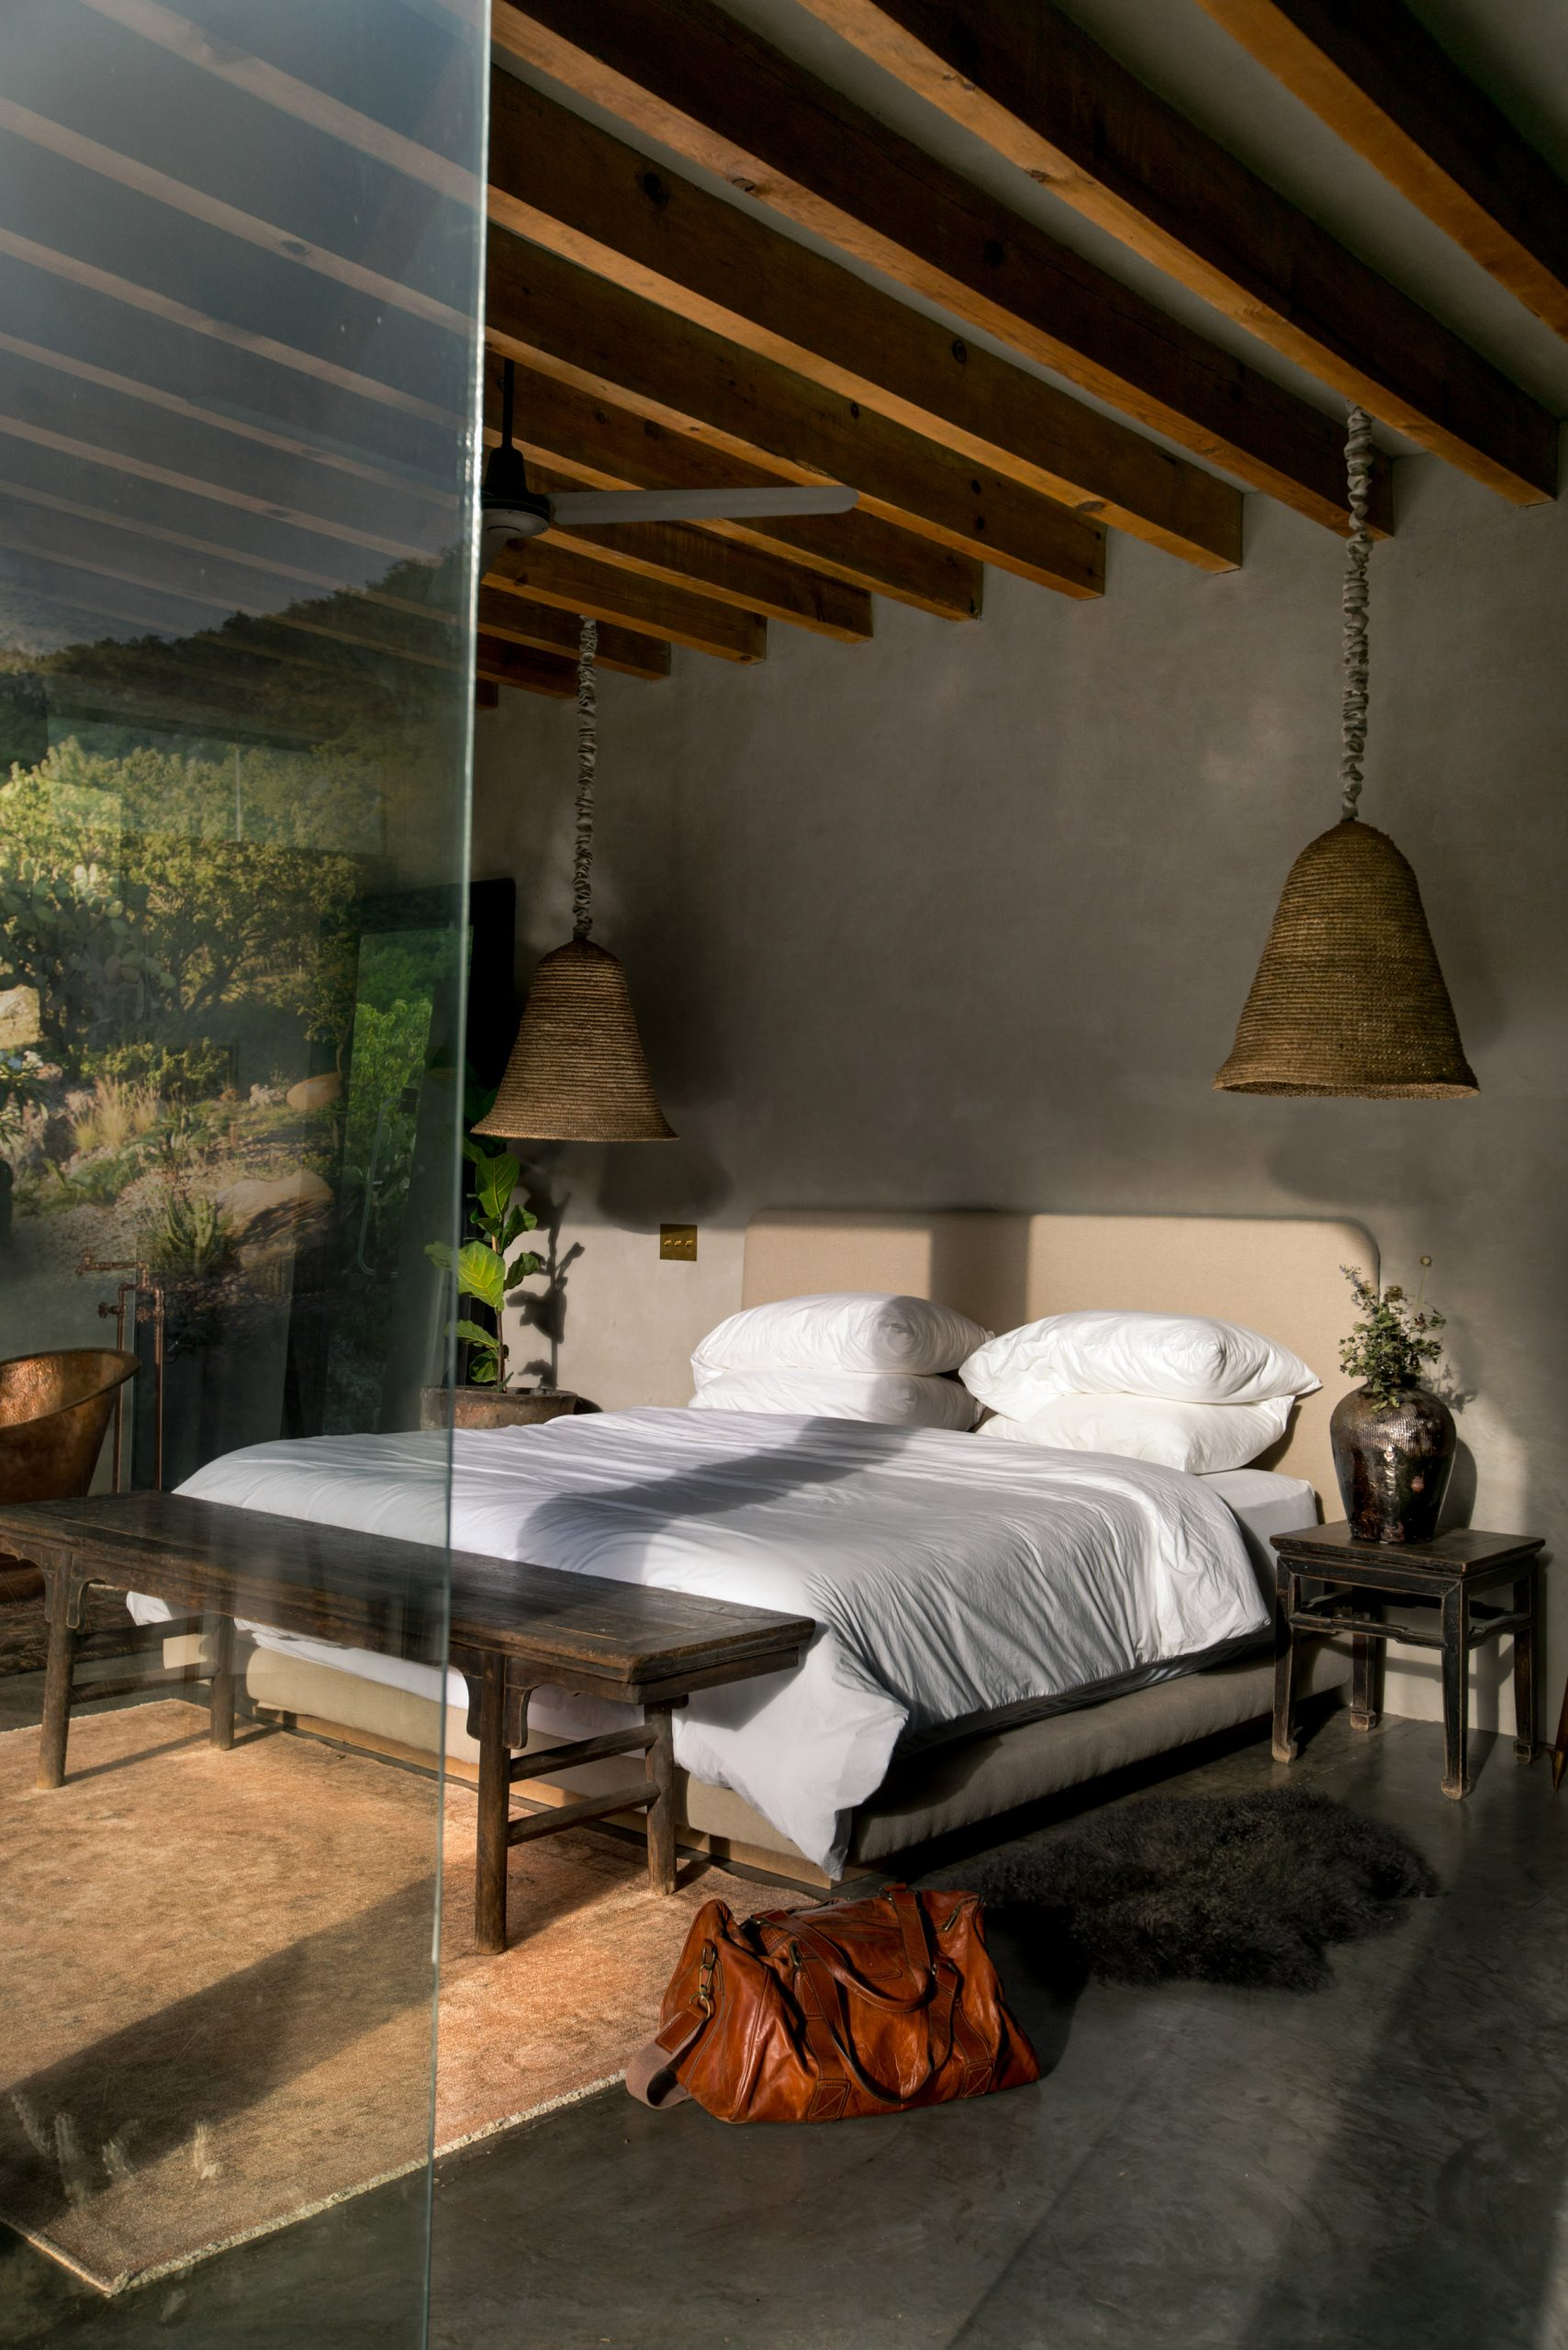 Bedroom of mirrored cabin by Prashant Ashoka